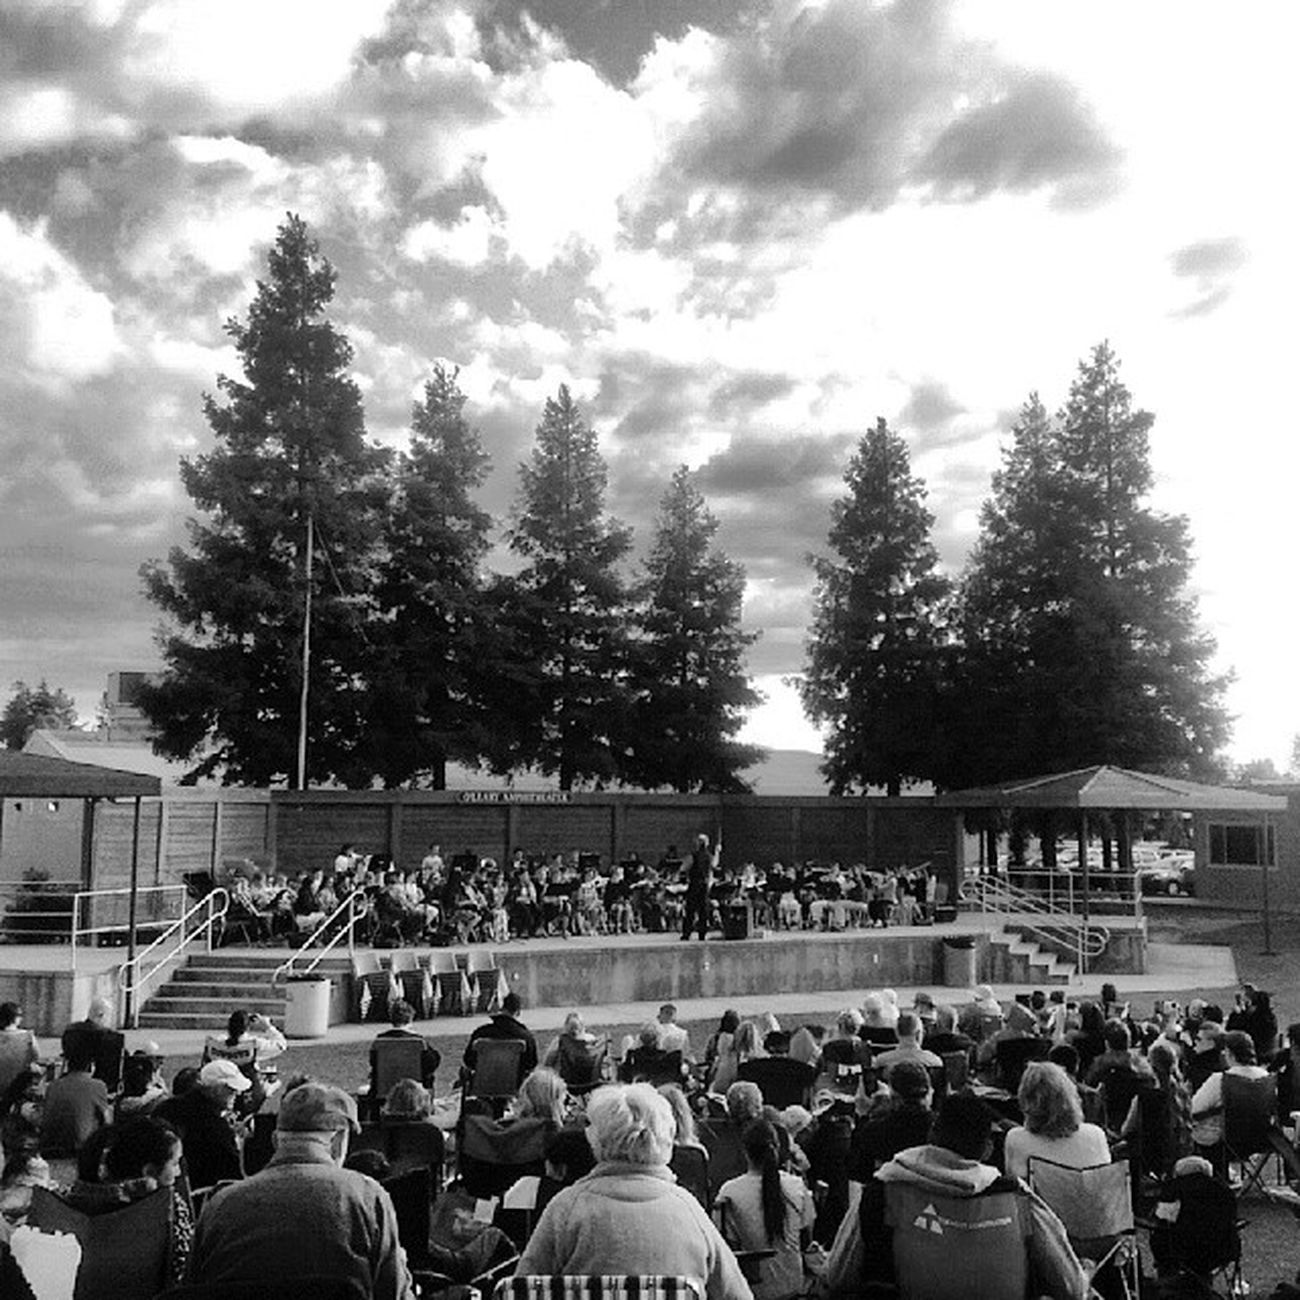 Band recital on a windy night under threatening clouds.